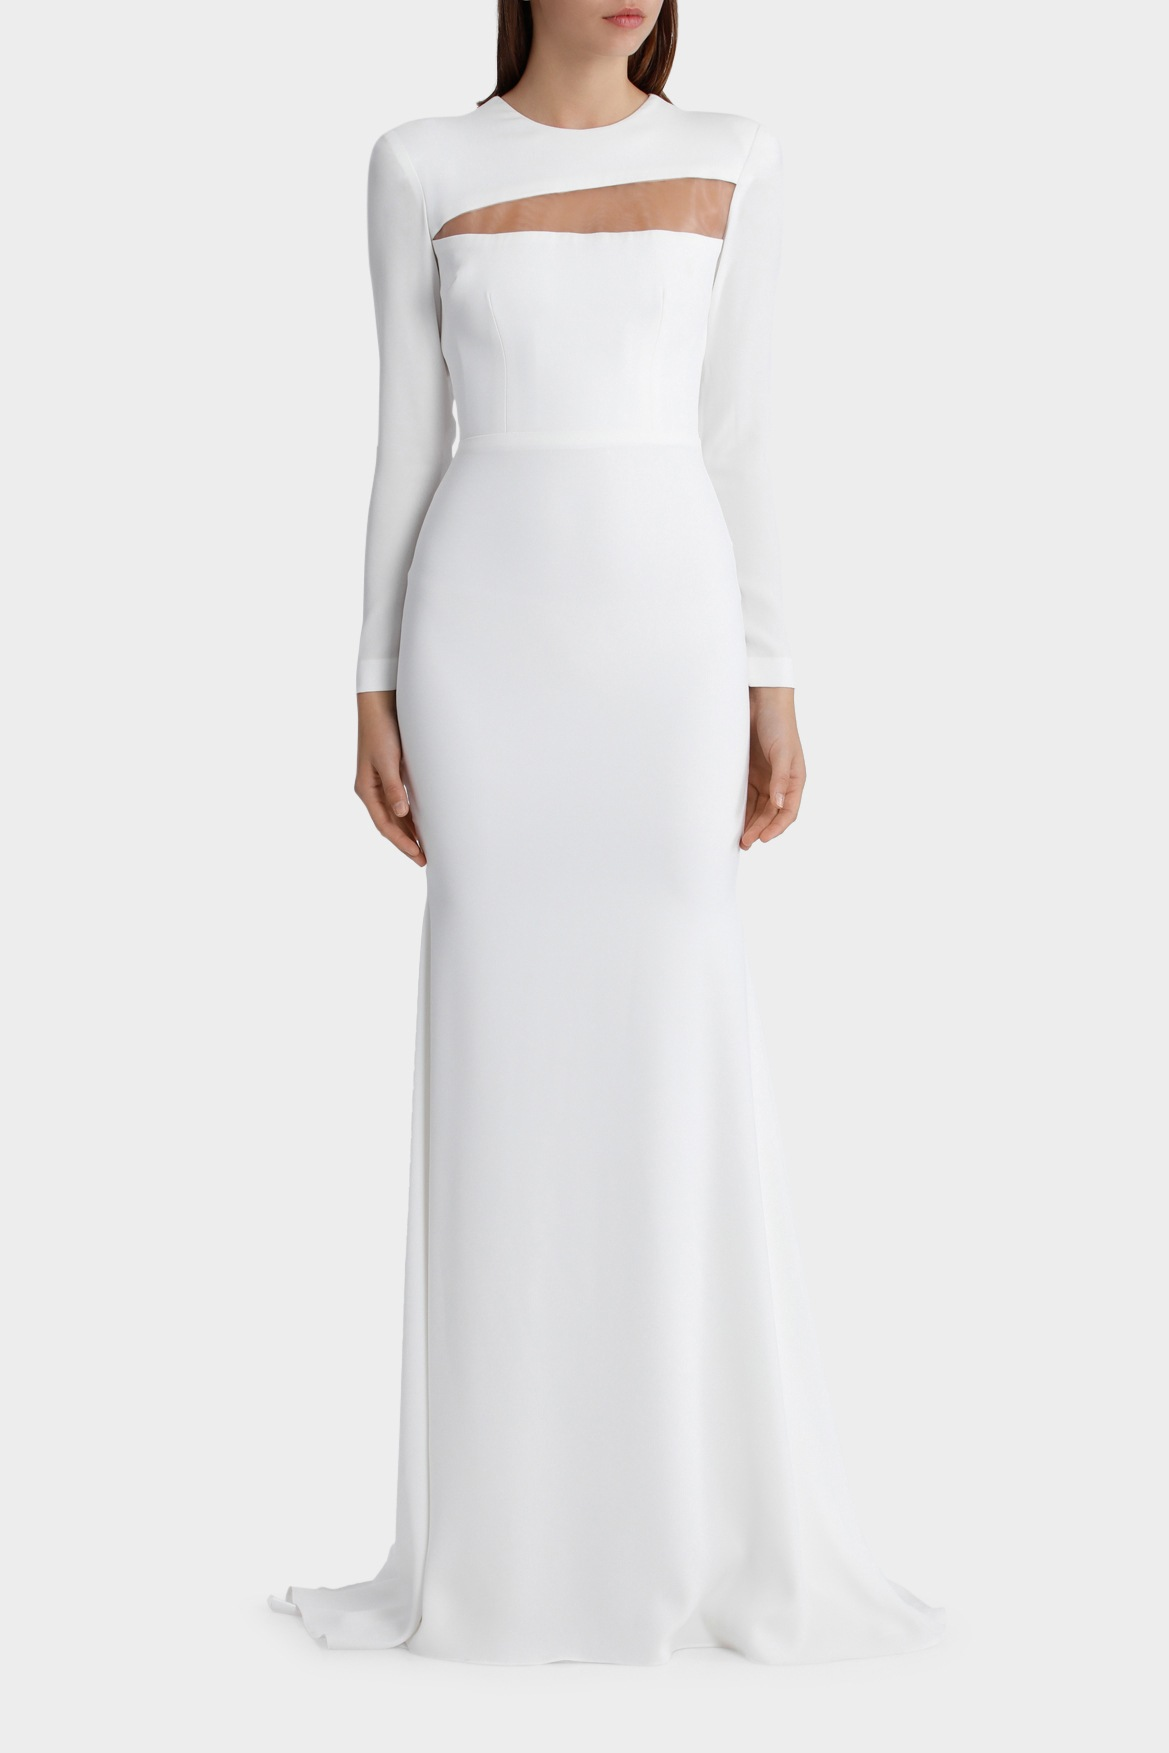 Alex Perry | Jordan - Satin Back Sheer Long Sleeve Gown | Myer Online